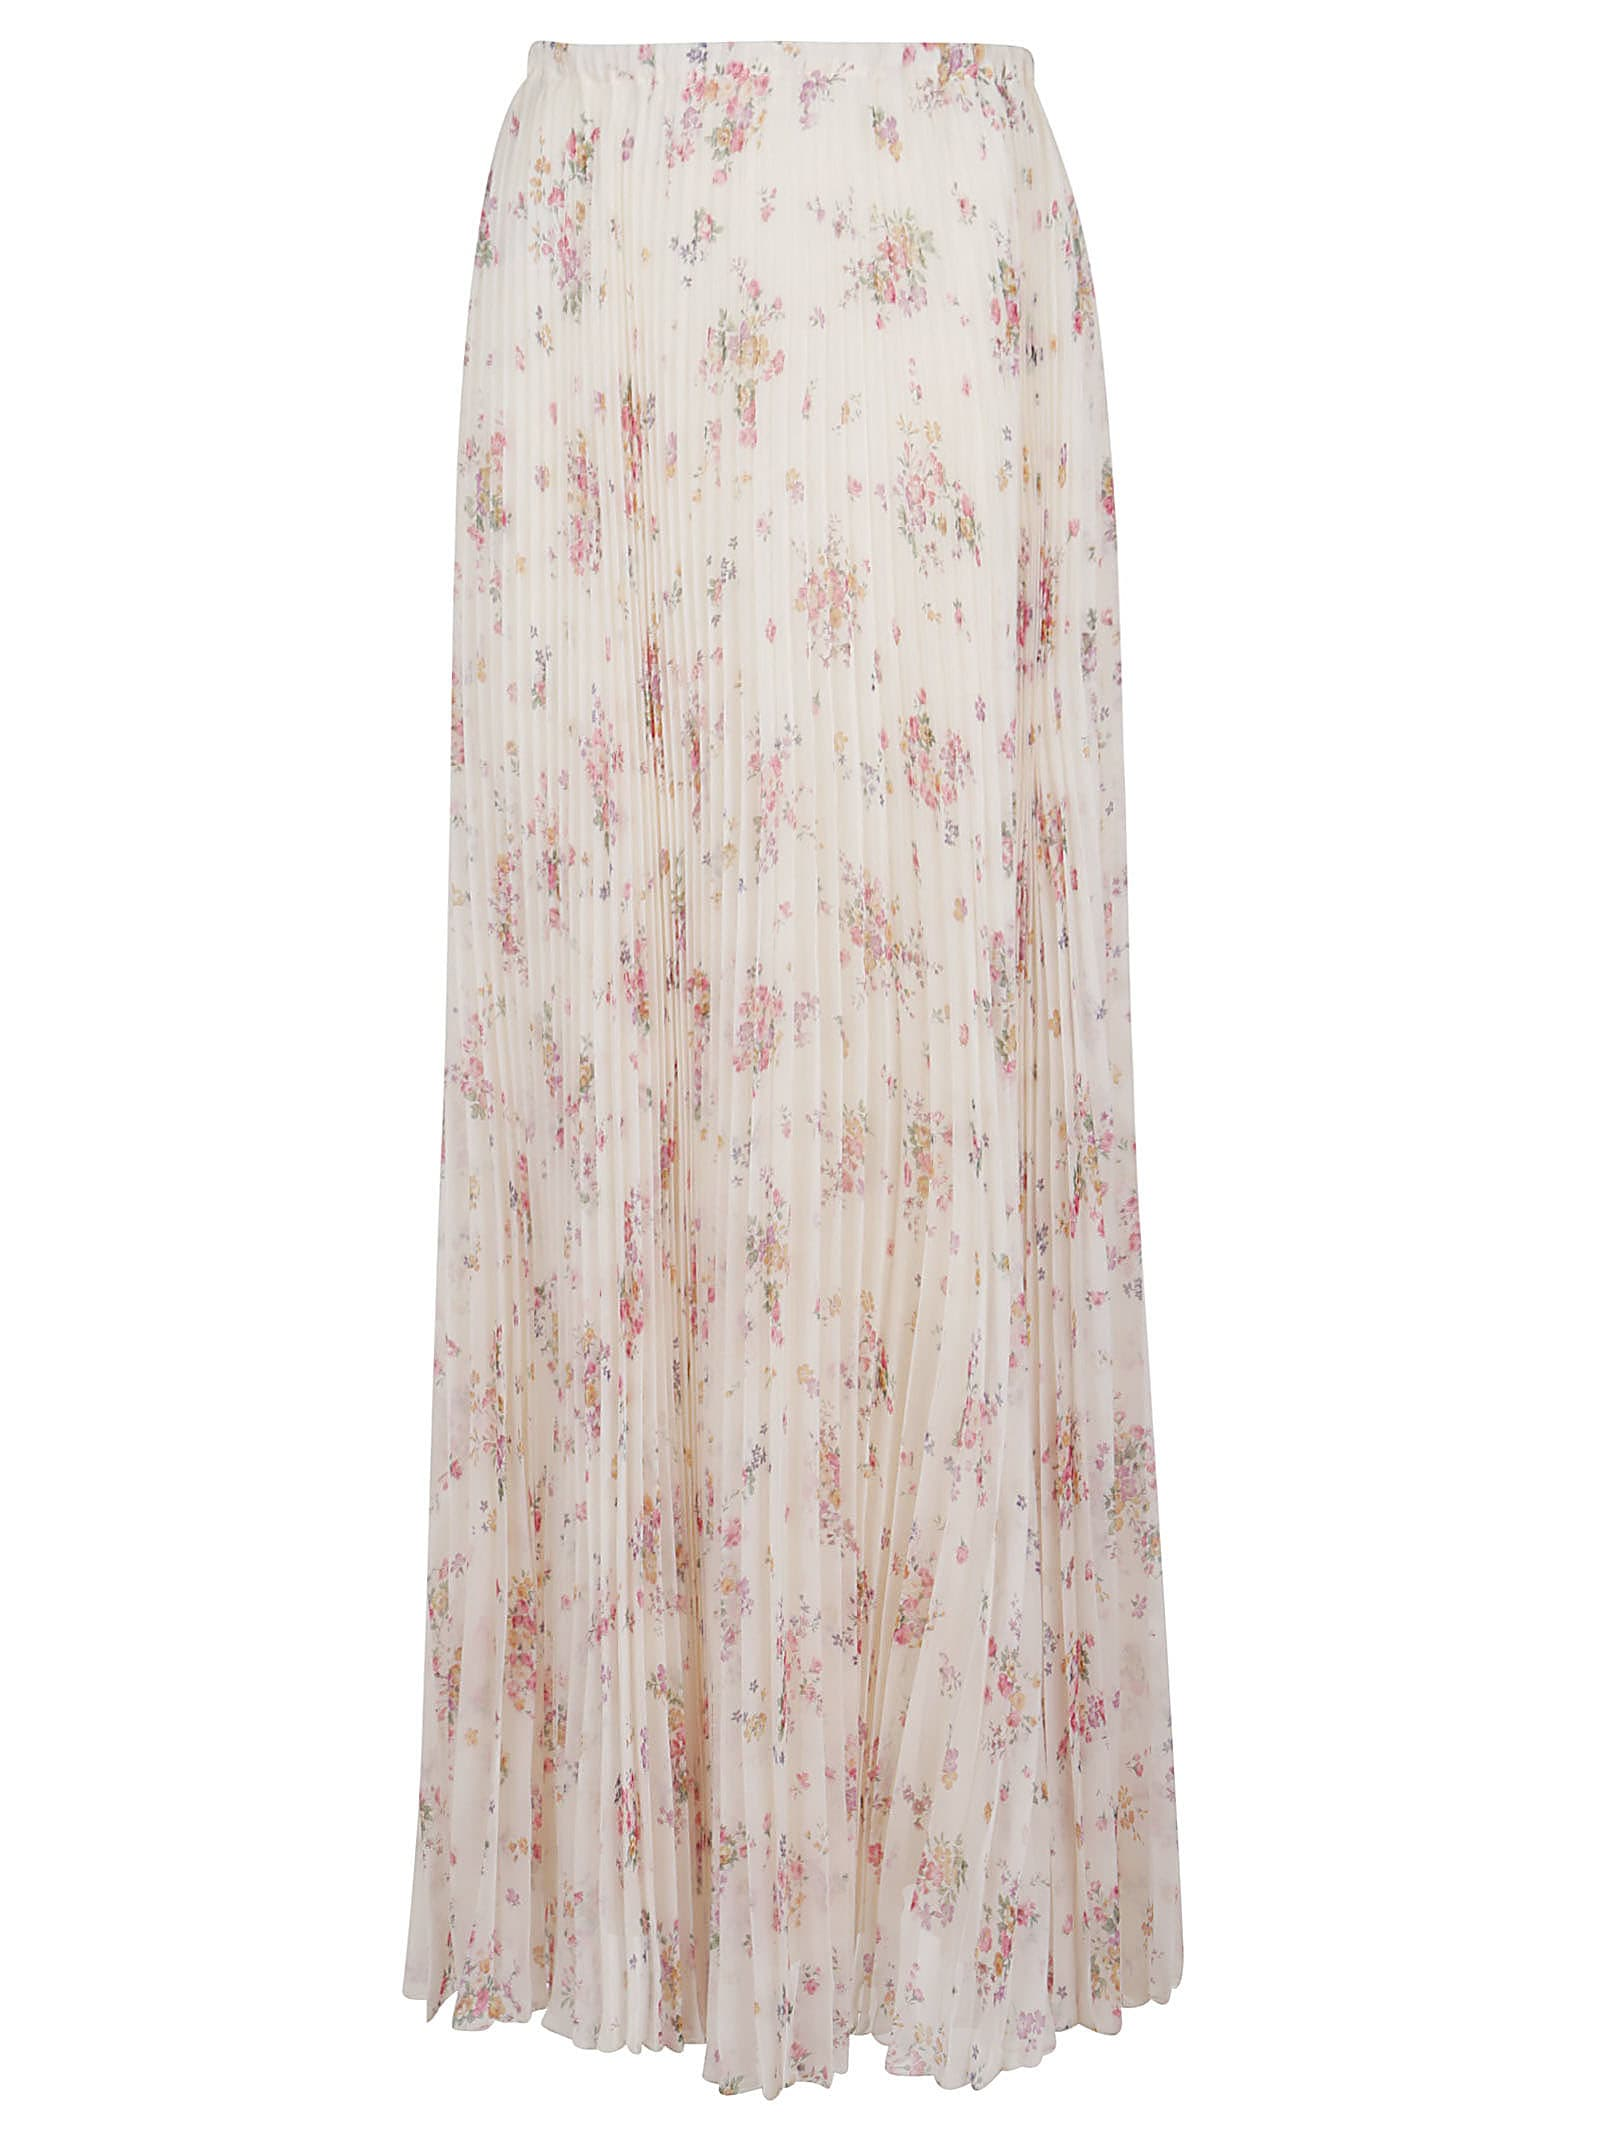 Philosophy di Lorenzo Serafini Long Skirt